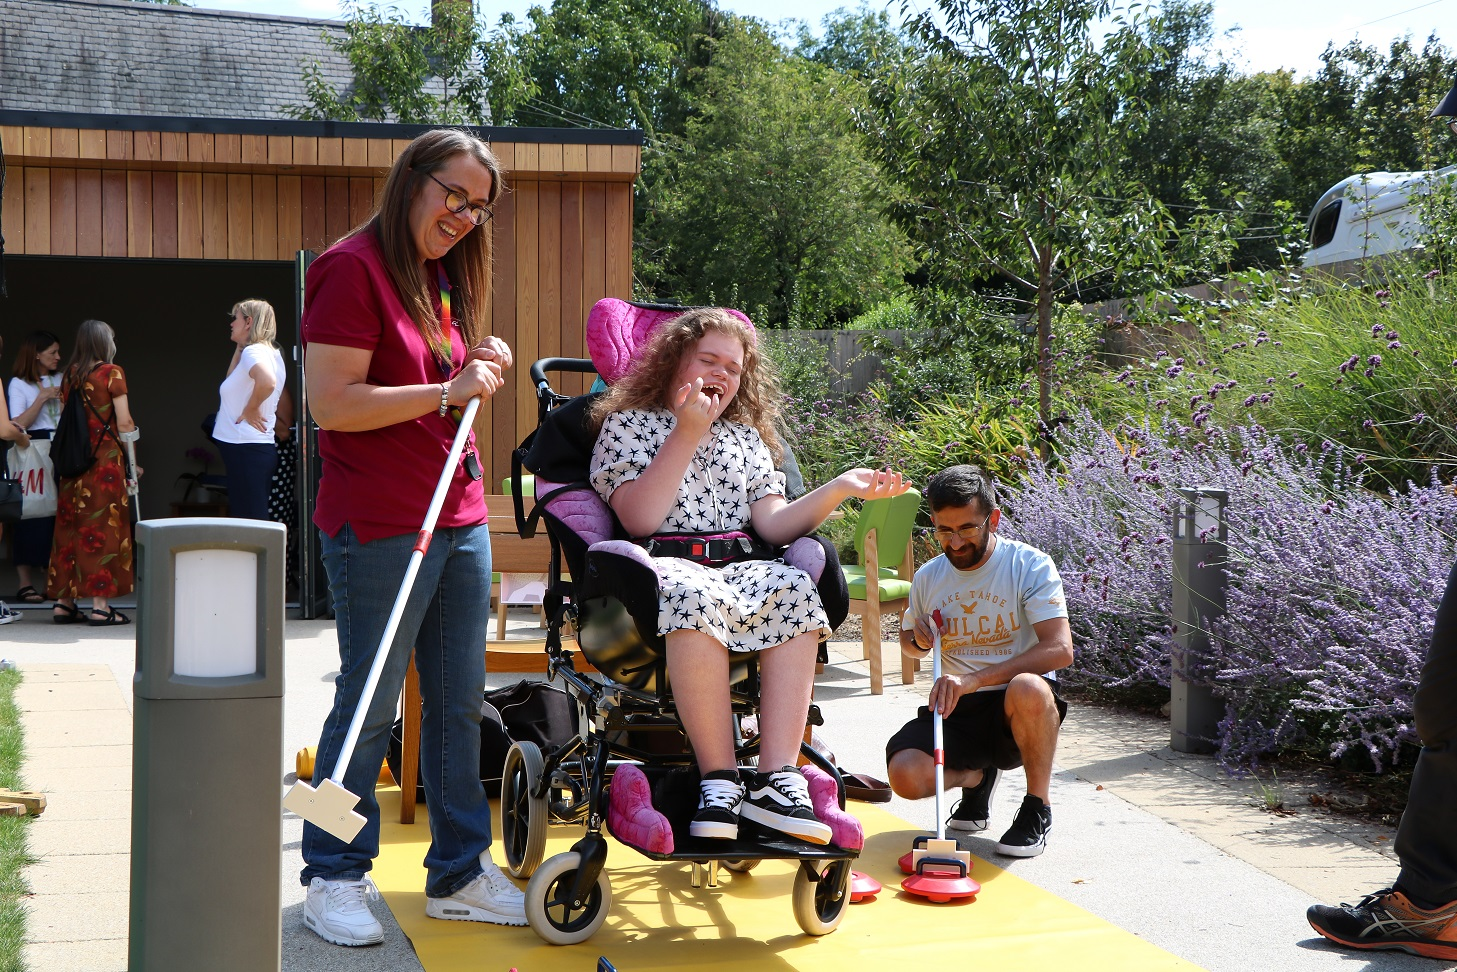 East Anglia hospices host events for young people transitioning to adult care services